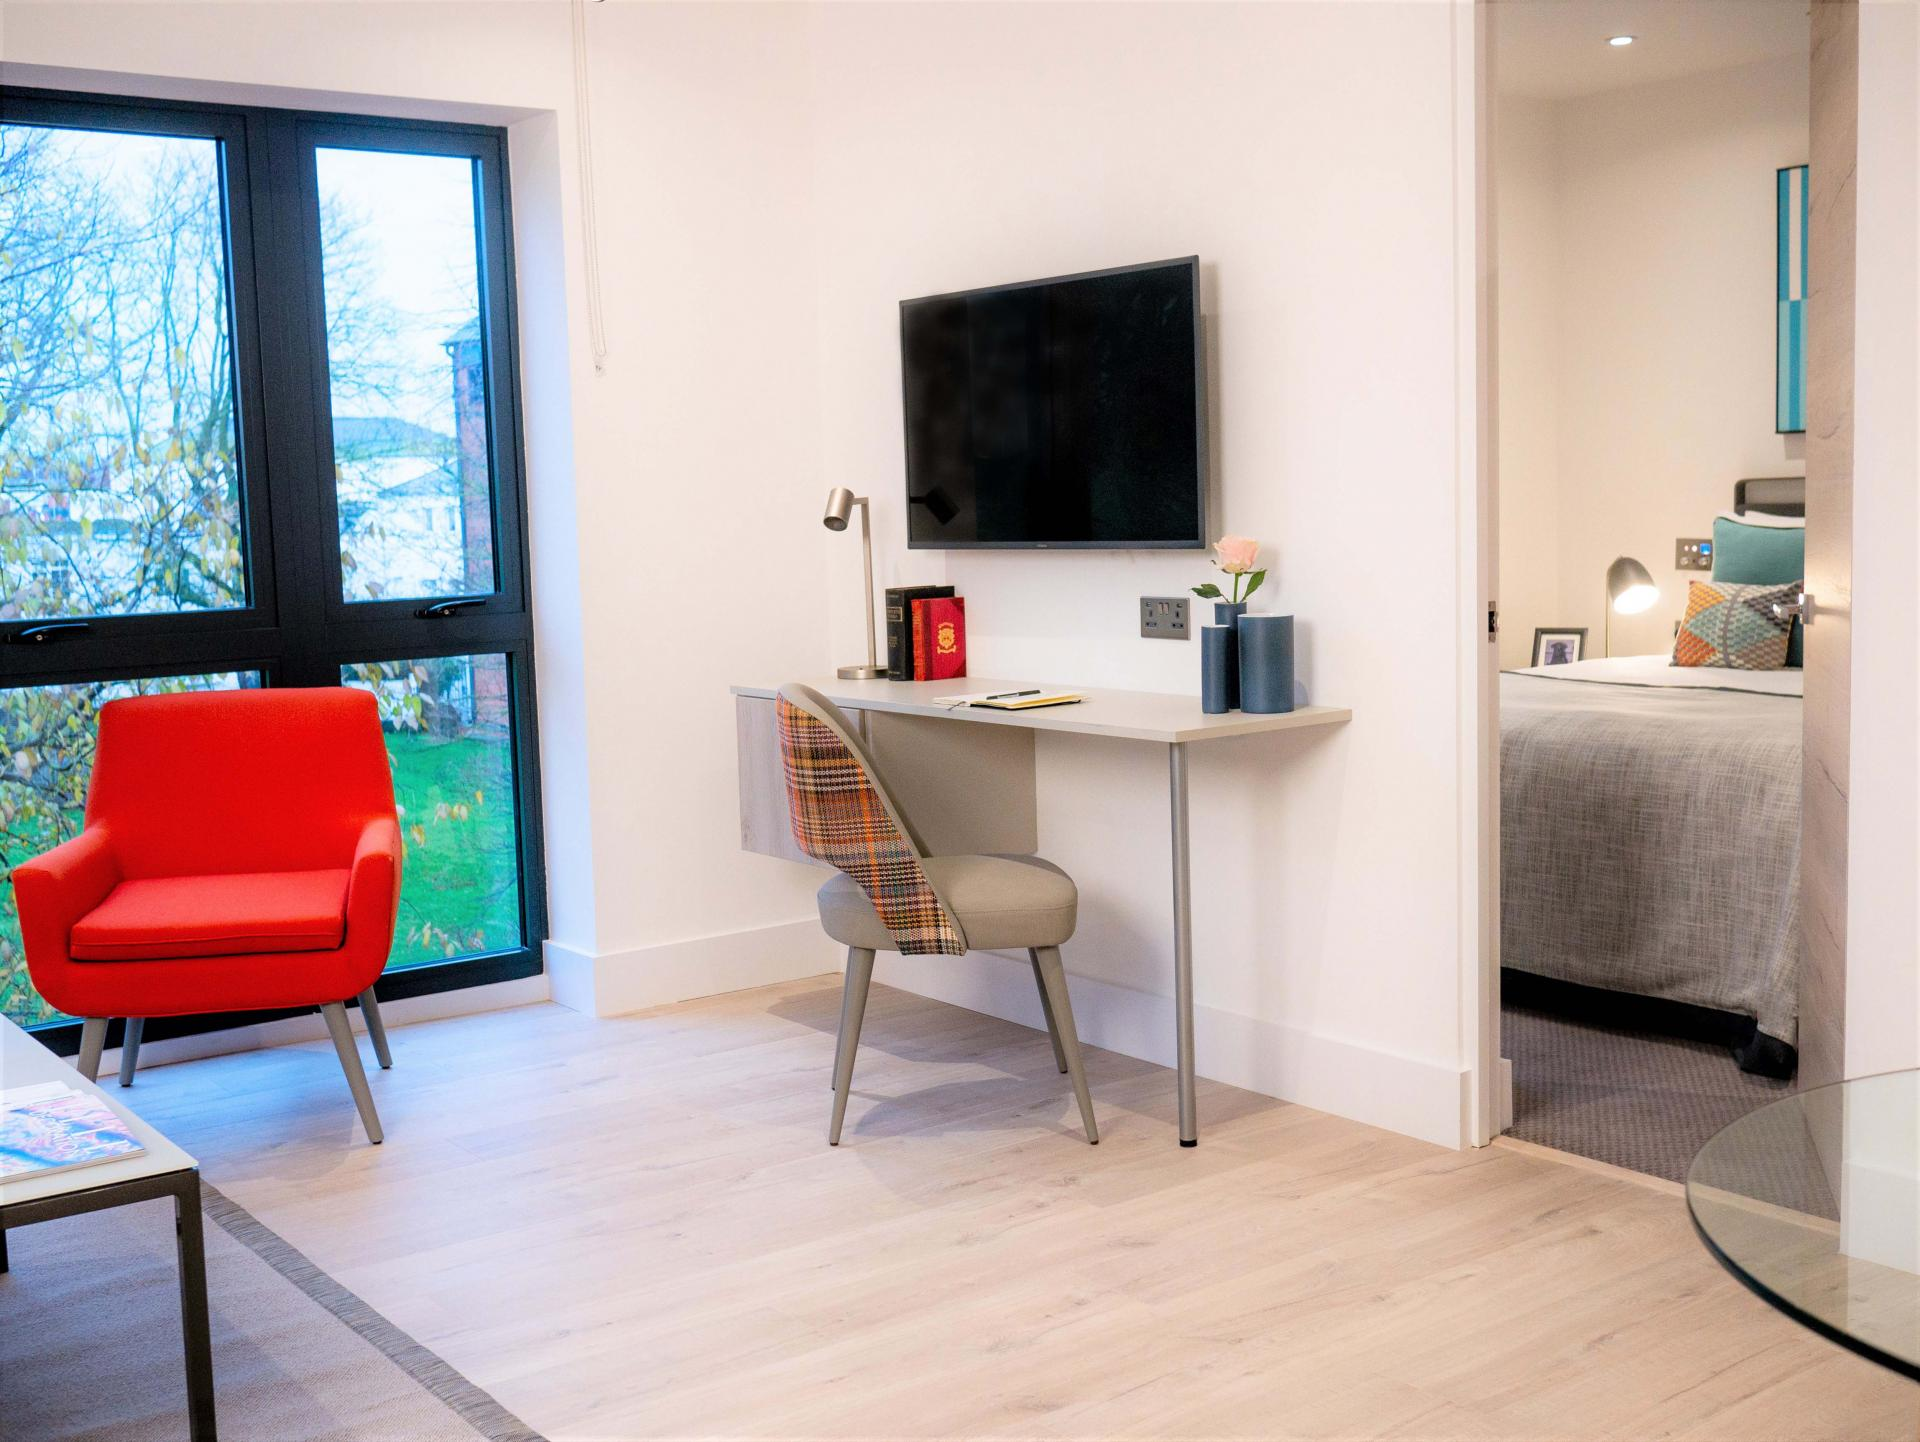 One Bedroom Suite at Q Square Aparthotel, Centre, Brighton - Citybase Apartments